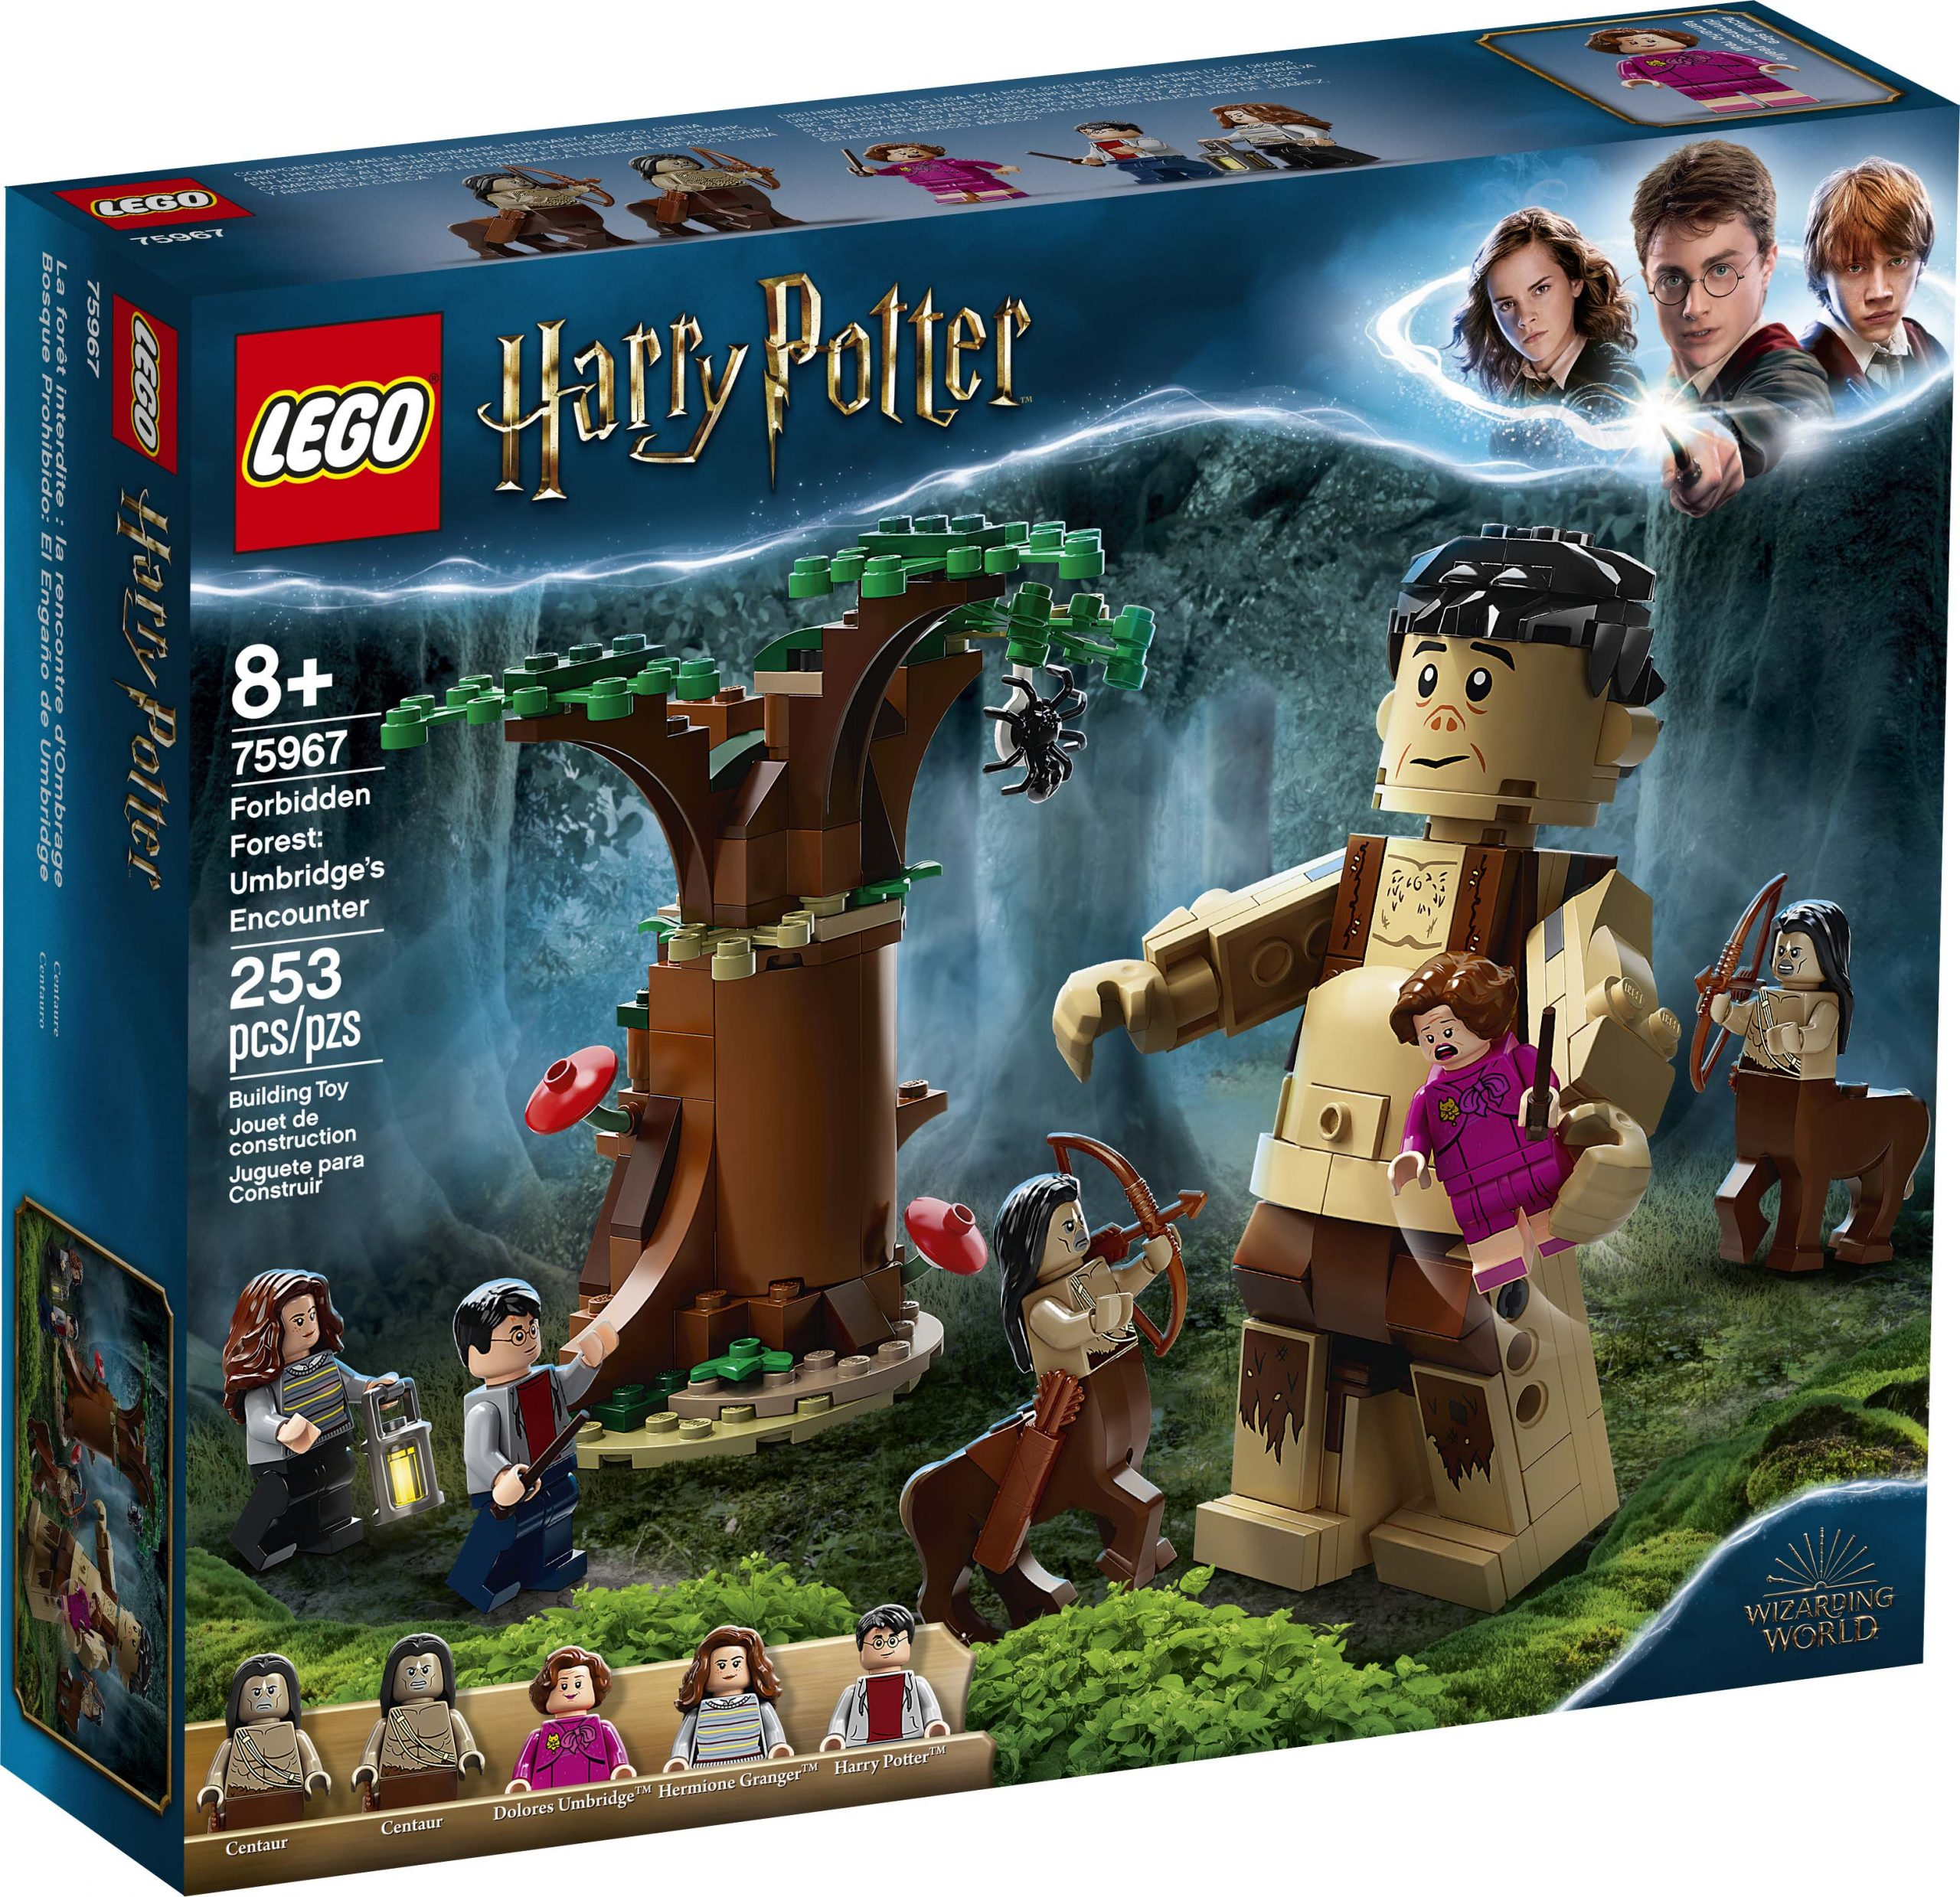 LEGO-Harry-Potter-Forbidden-Forest-Umbridge's-Encounter-75967